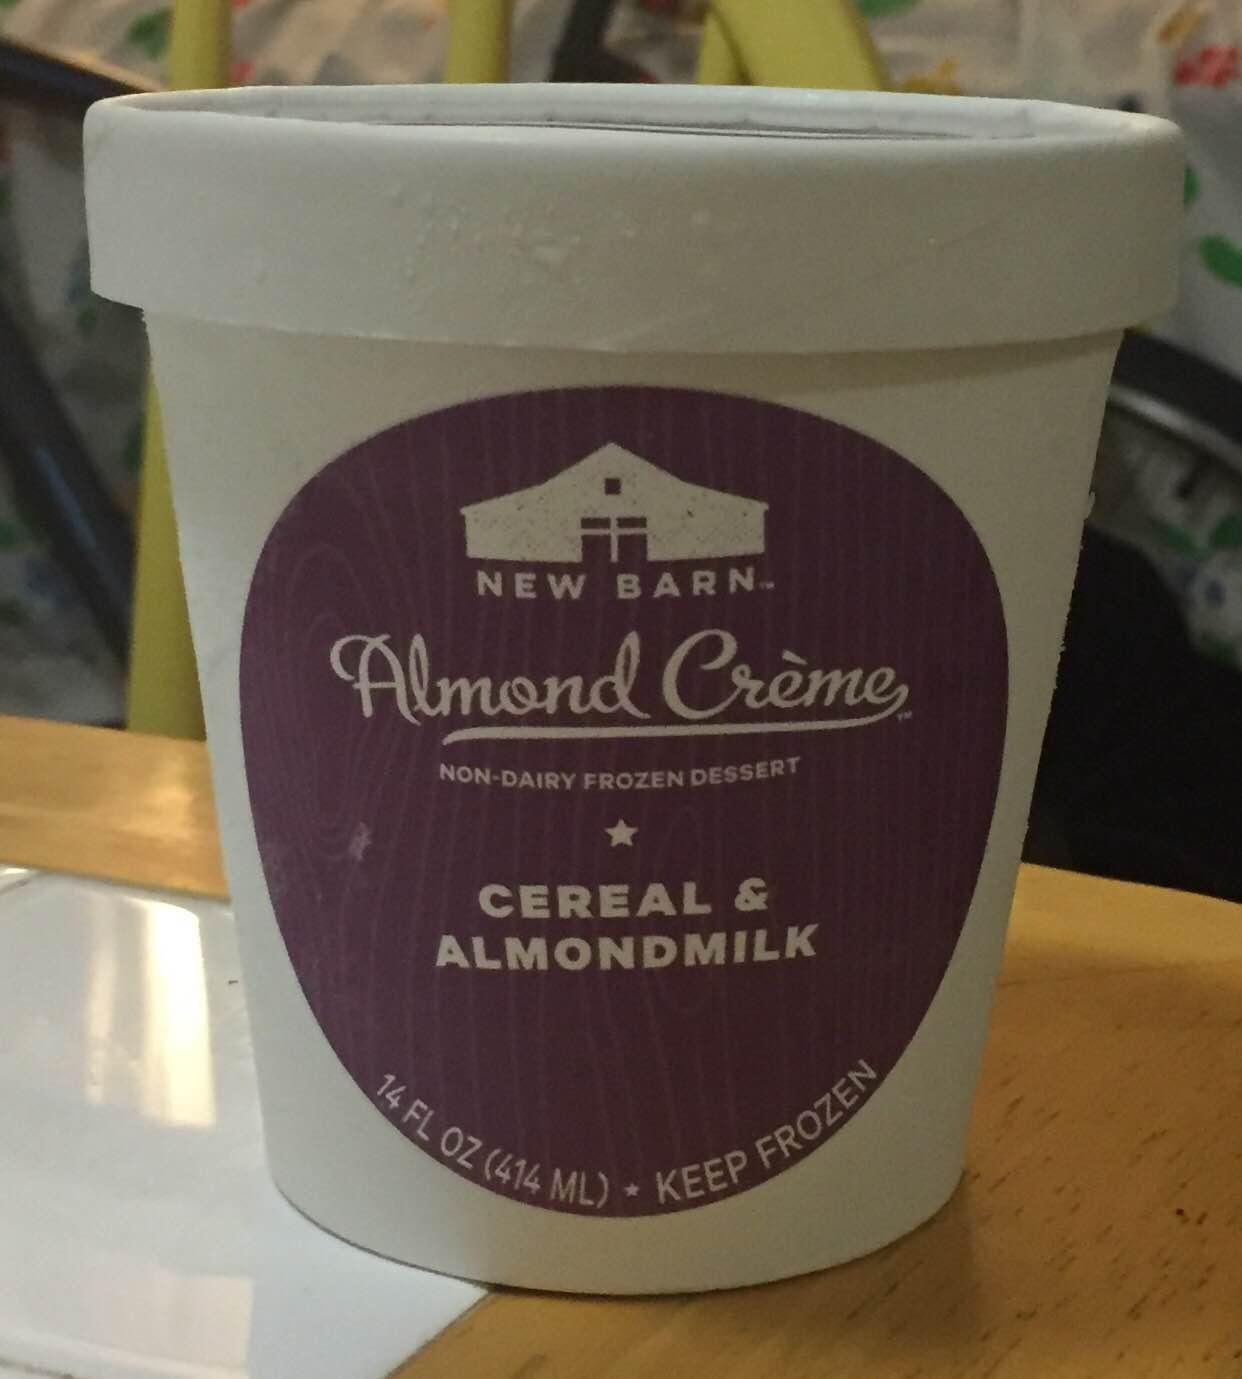 New Barn Almond Creme Cereal And Milk